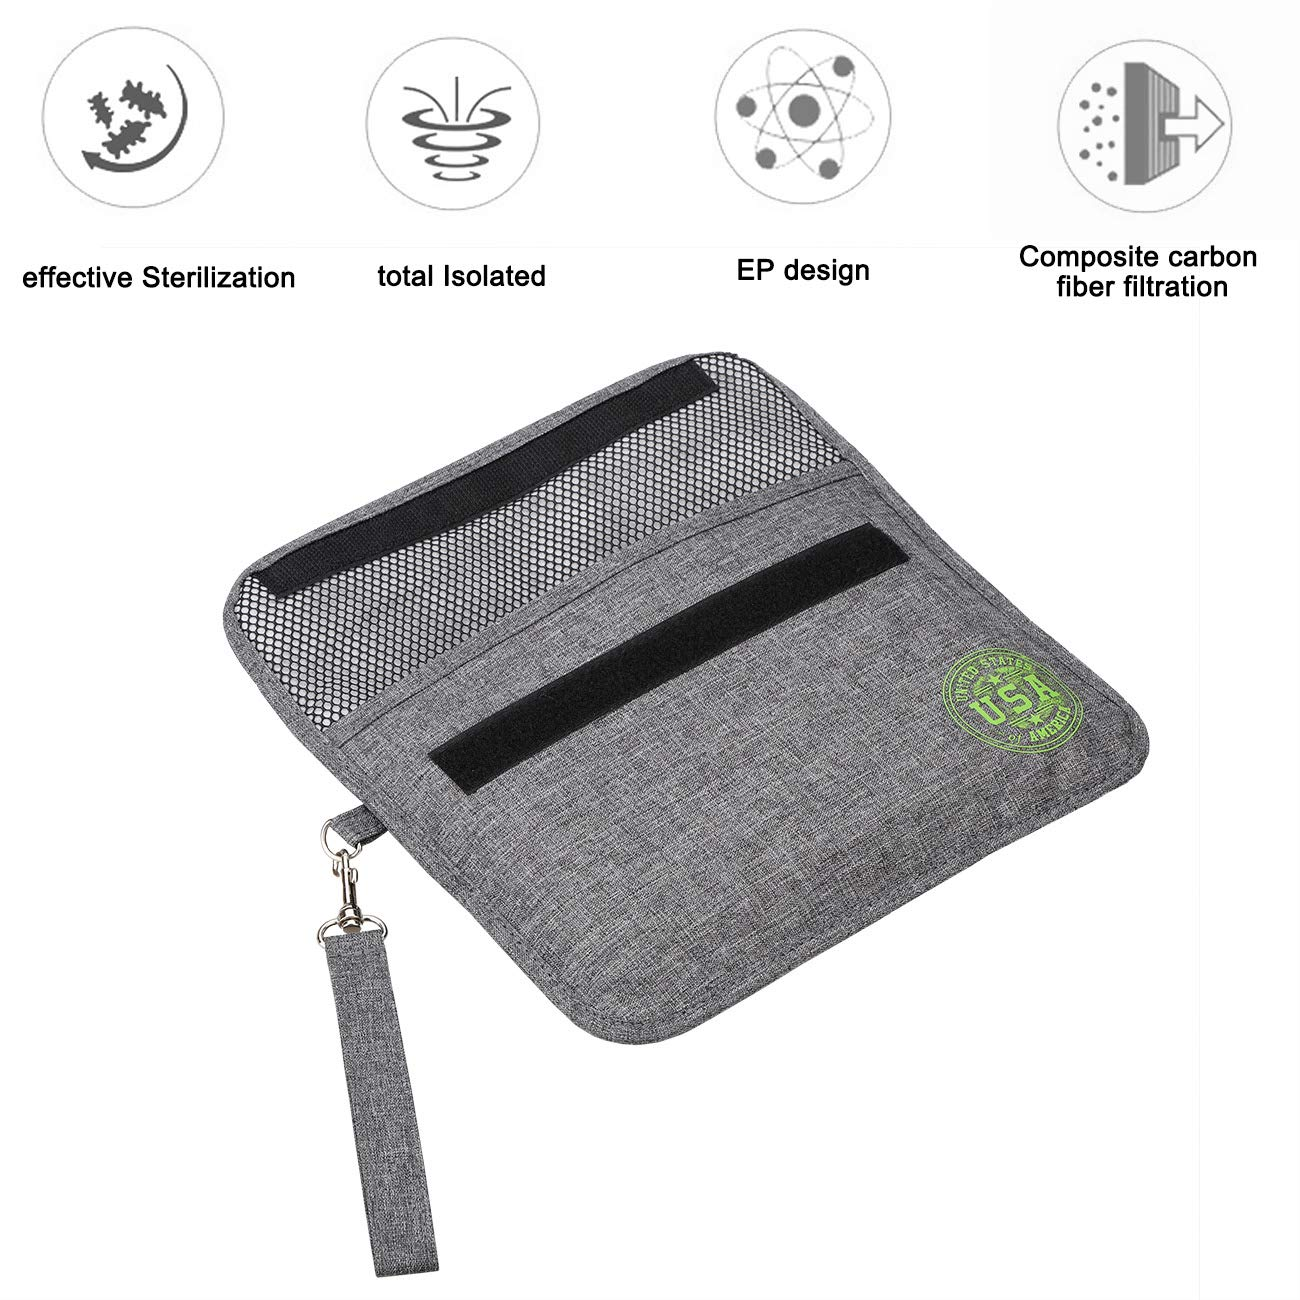 Smell Proof Bag 10 Inch x 7.5 Inch Portable Carbon Tissue Odor Proof Pouch - Sturdy and Modern Carbon Lined Stash Bag - Premium Quality Eco-Friendly Materials - Multiple Pockets - Waterproof Back